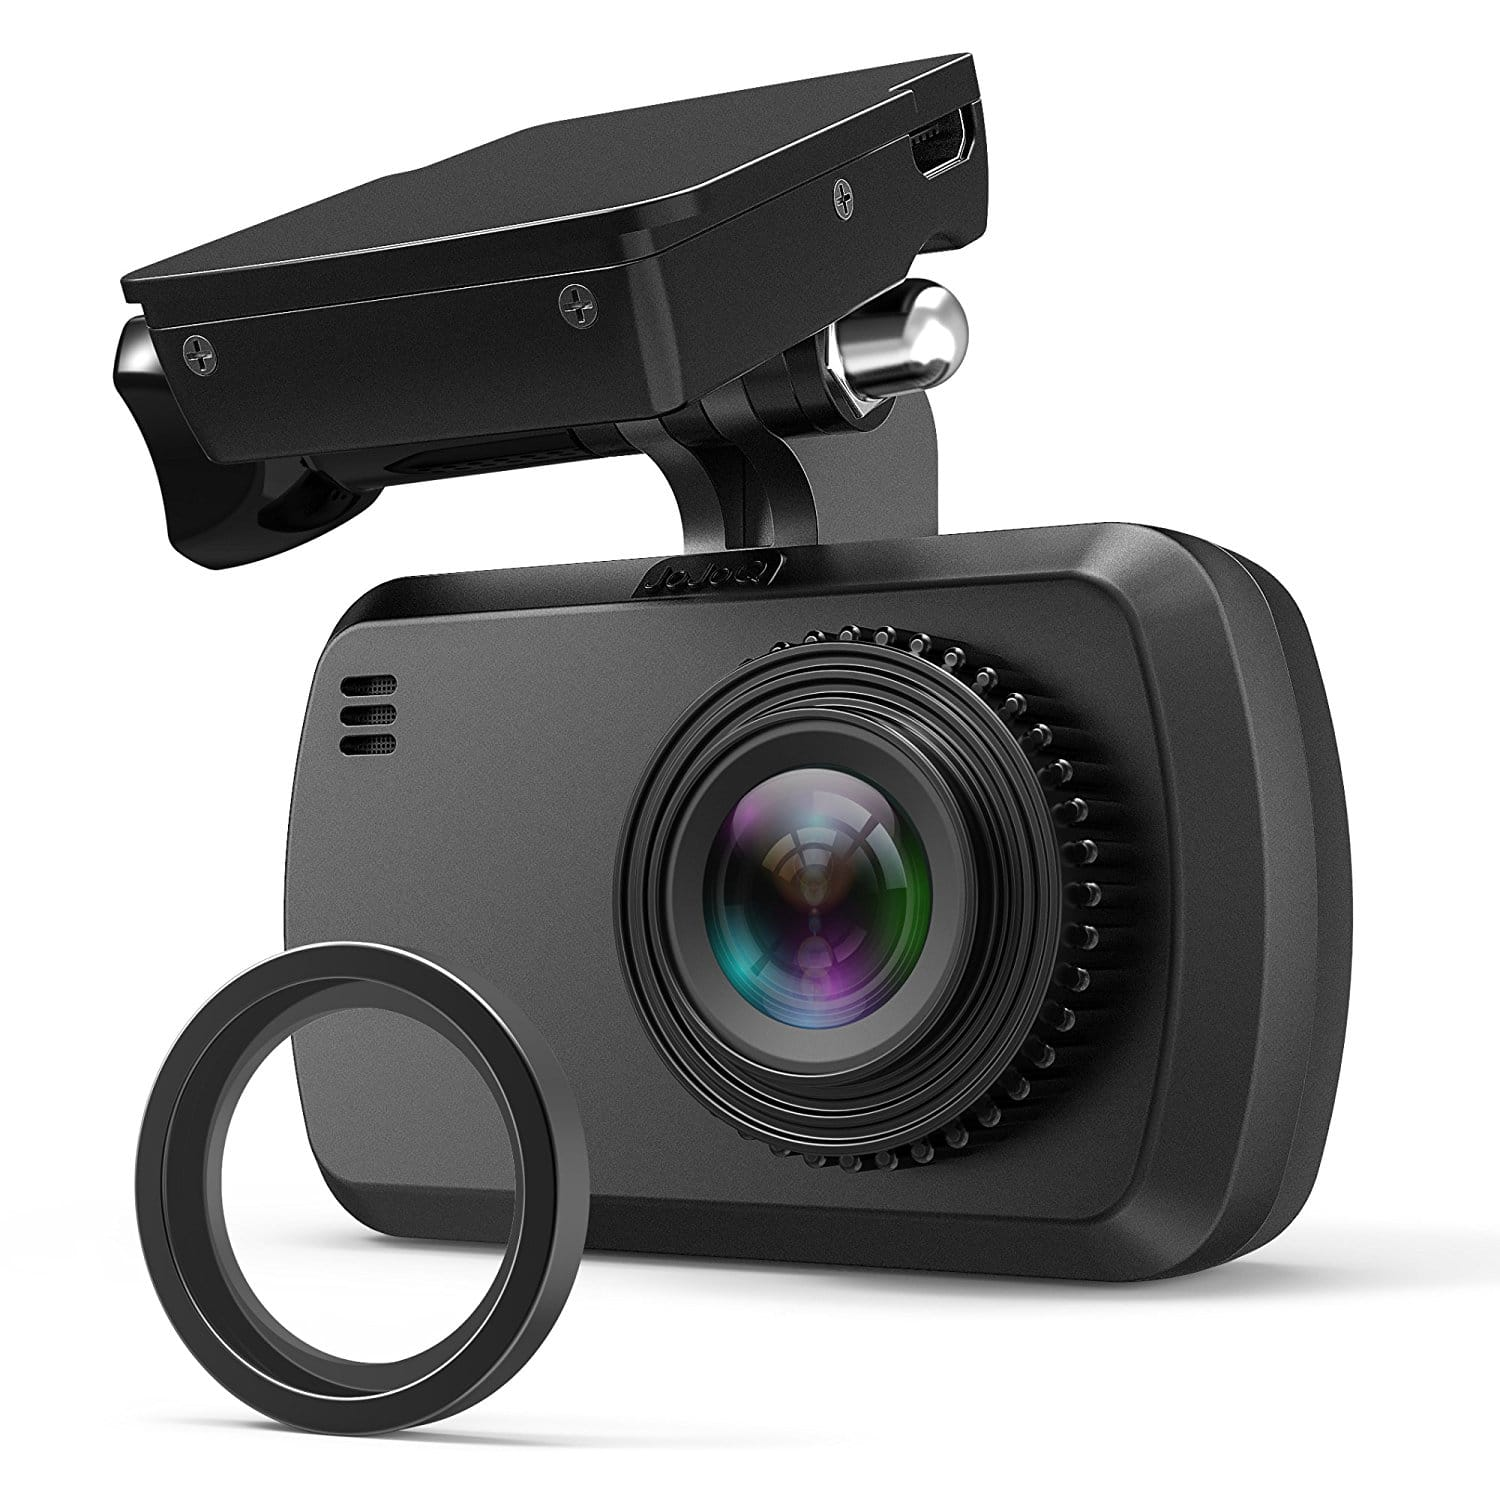 Veckle FHD 1080P JoJoQ Dashboard Camera Recorder with CPL Filter $49.99 + free shipping